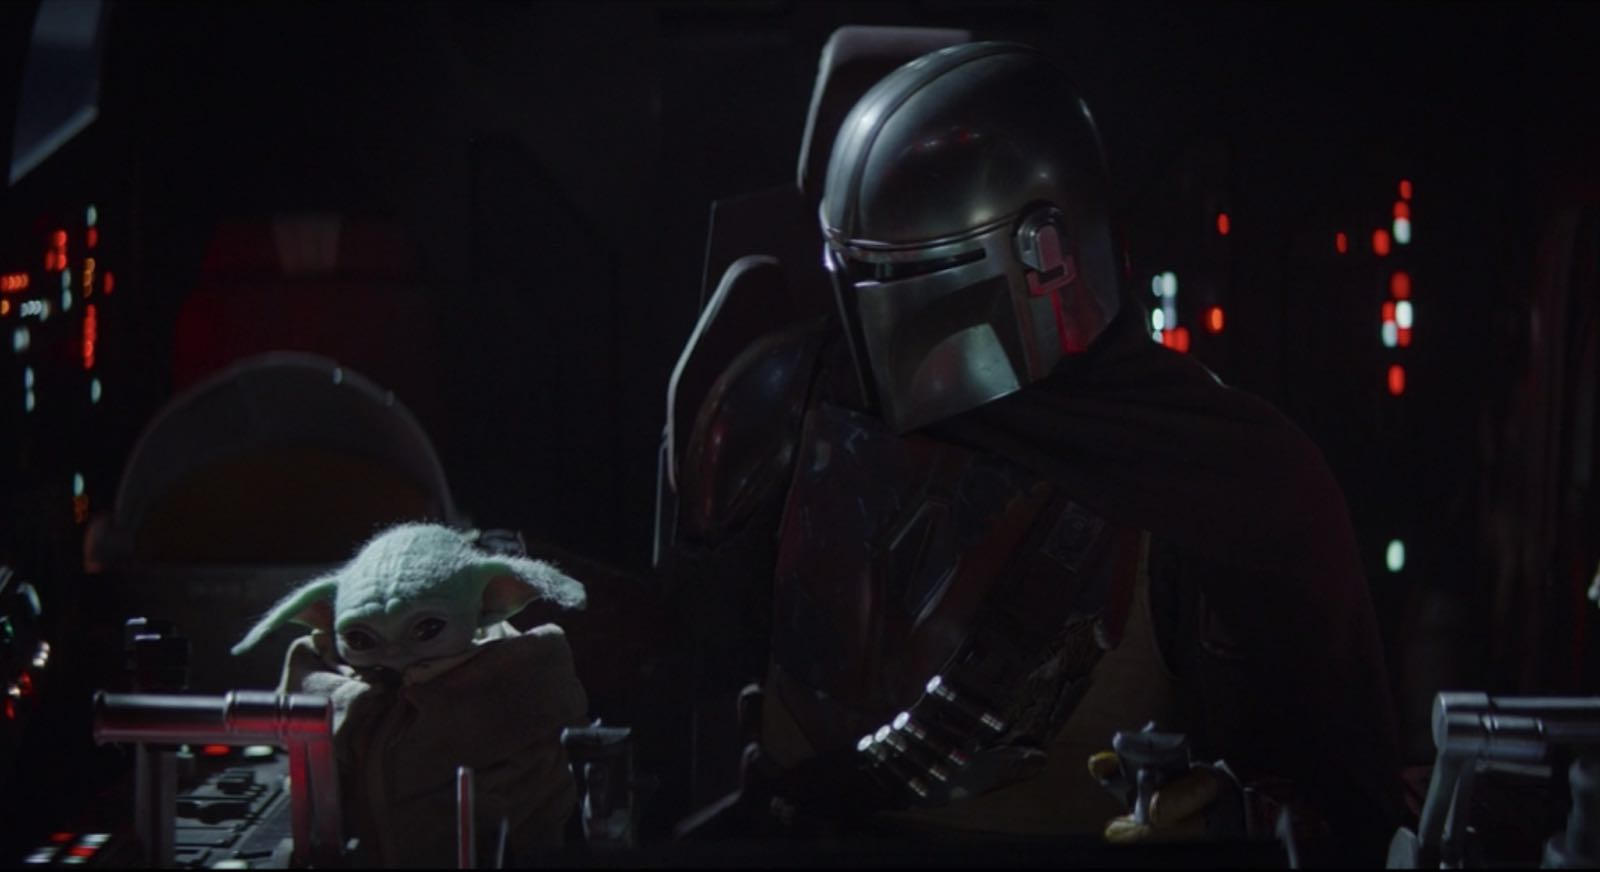 Mando looks down at Baby Yoda while piloting his ship.